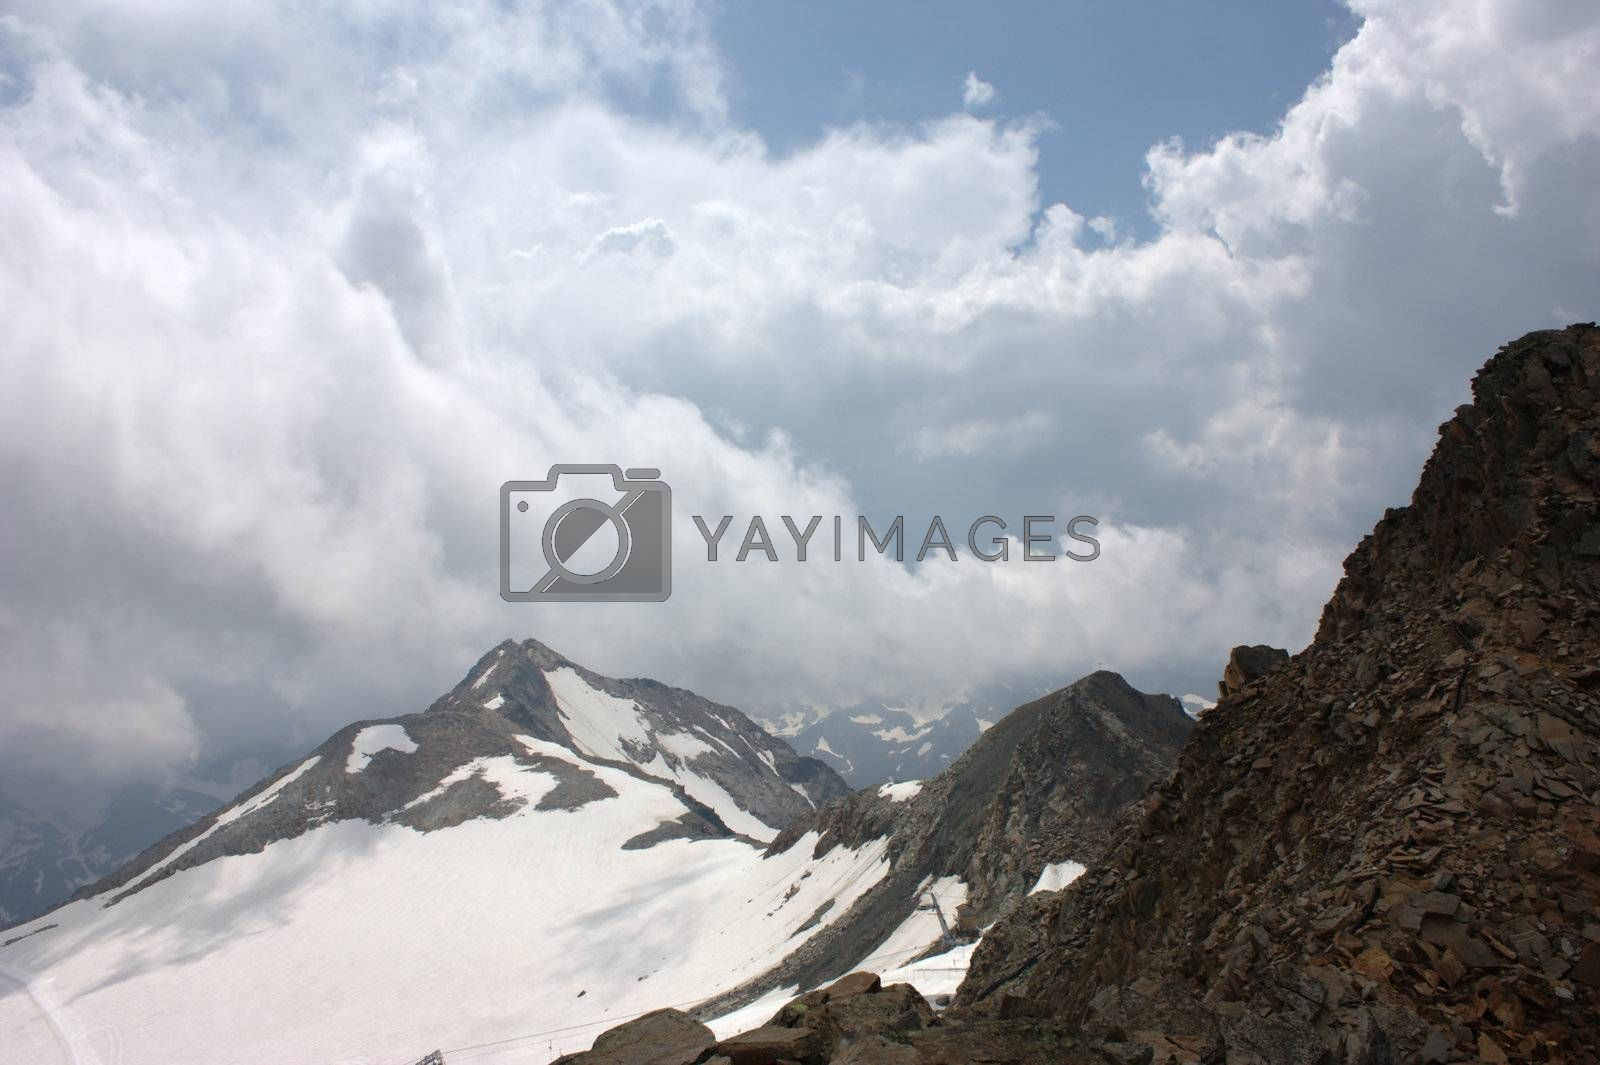 Royalty free image of Stubai glacier in Tyrol by cflux